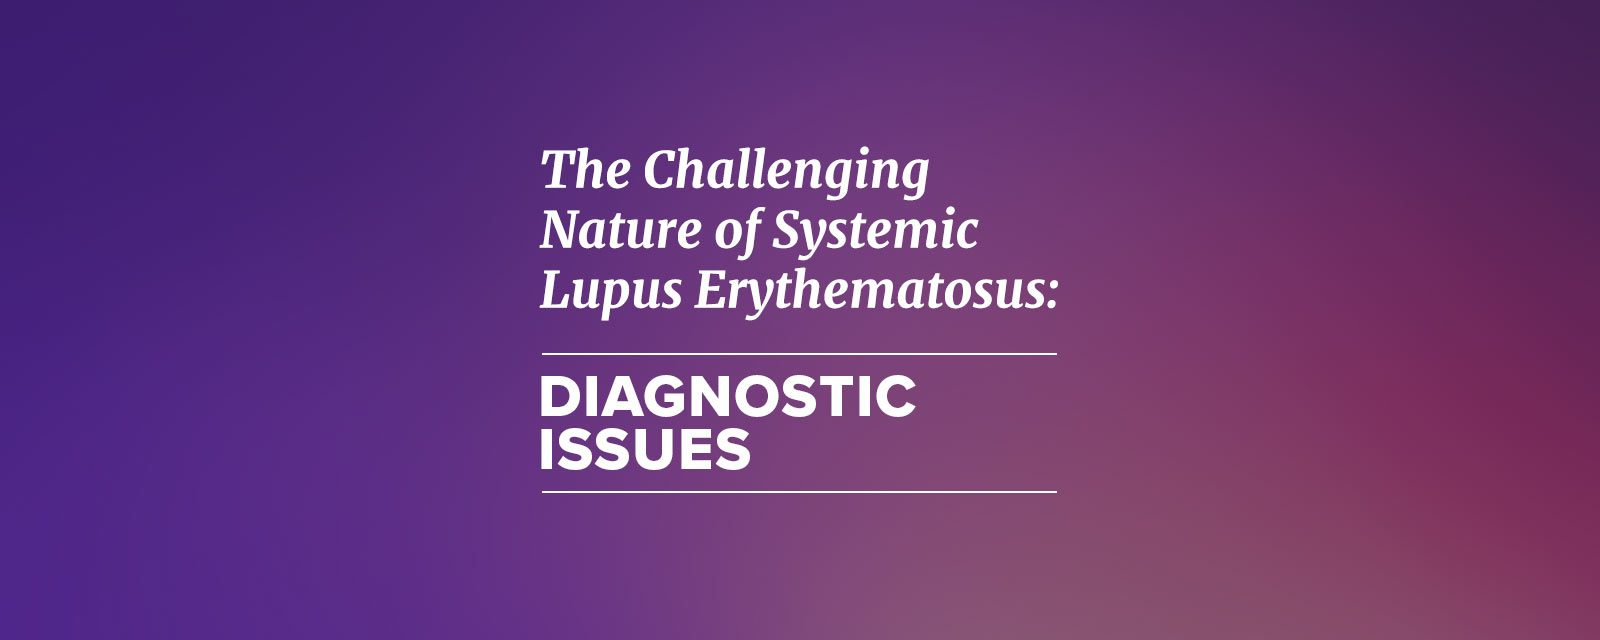 The Challenging Nature of Systemic Lupus Erythematosus: Diagnostic Issues